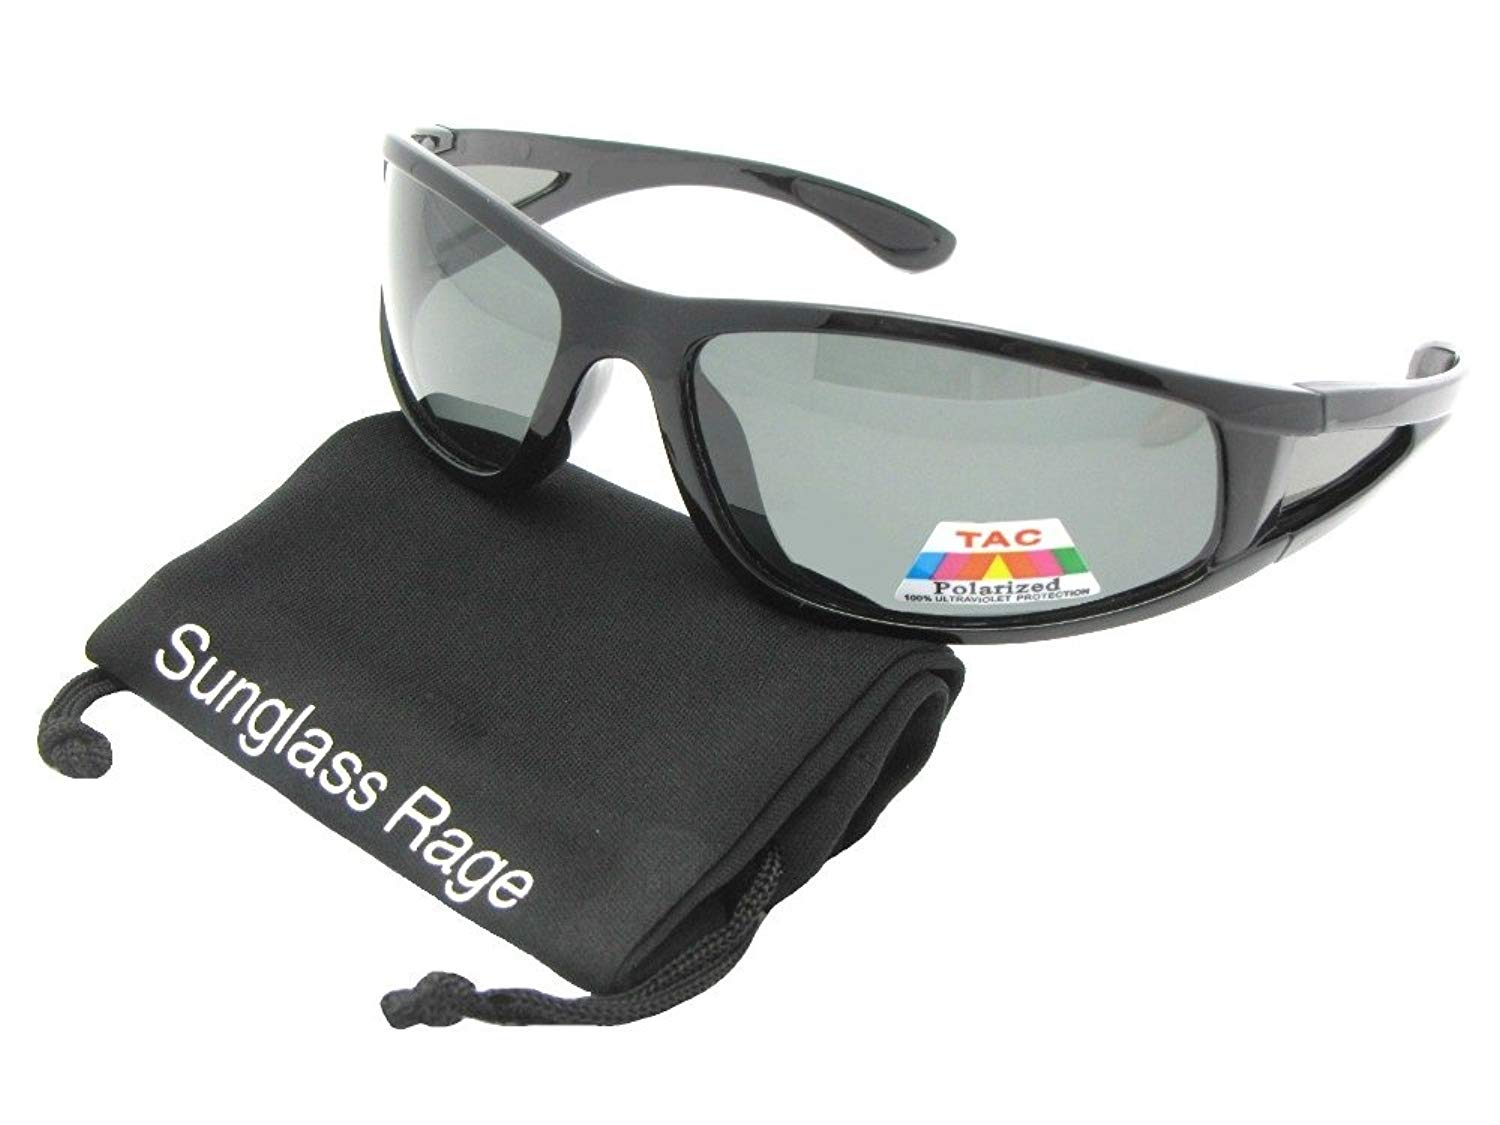 e8005781694 Get Quotations · Sunglass Rage Style PSR2 Polarized Wrap Around Sports  Sunglasses